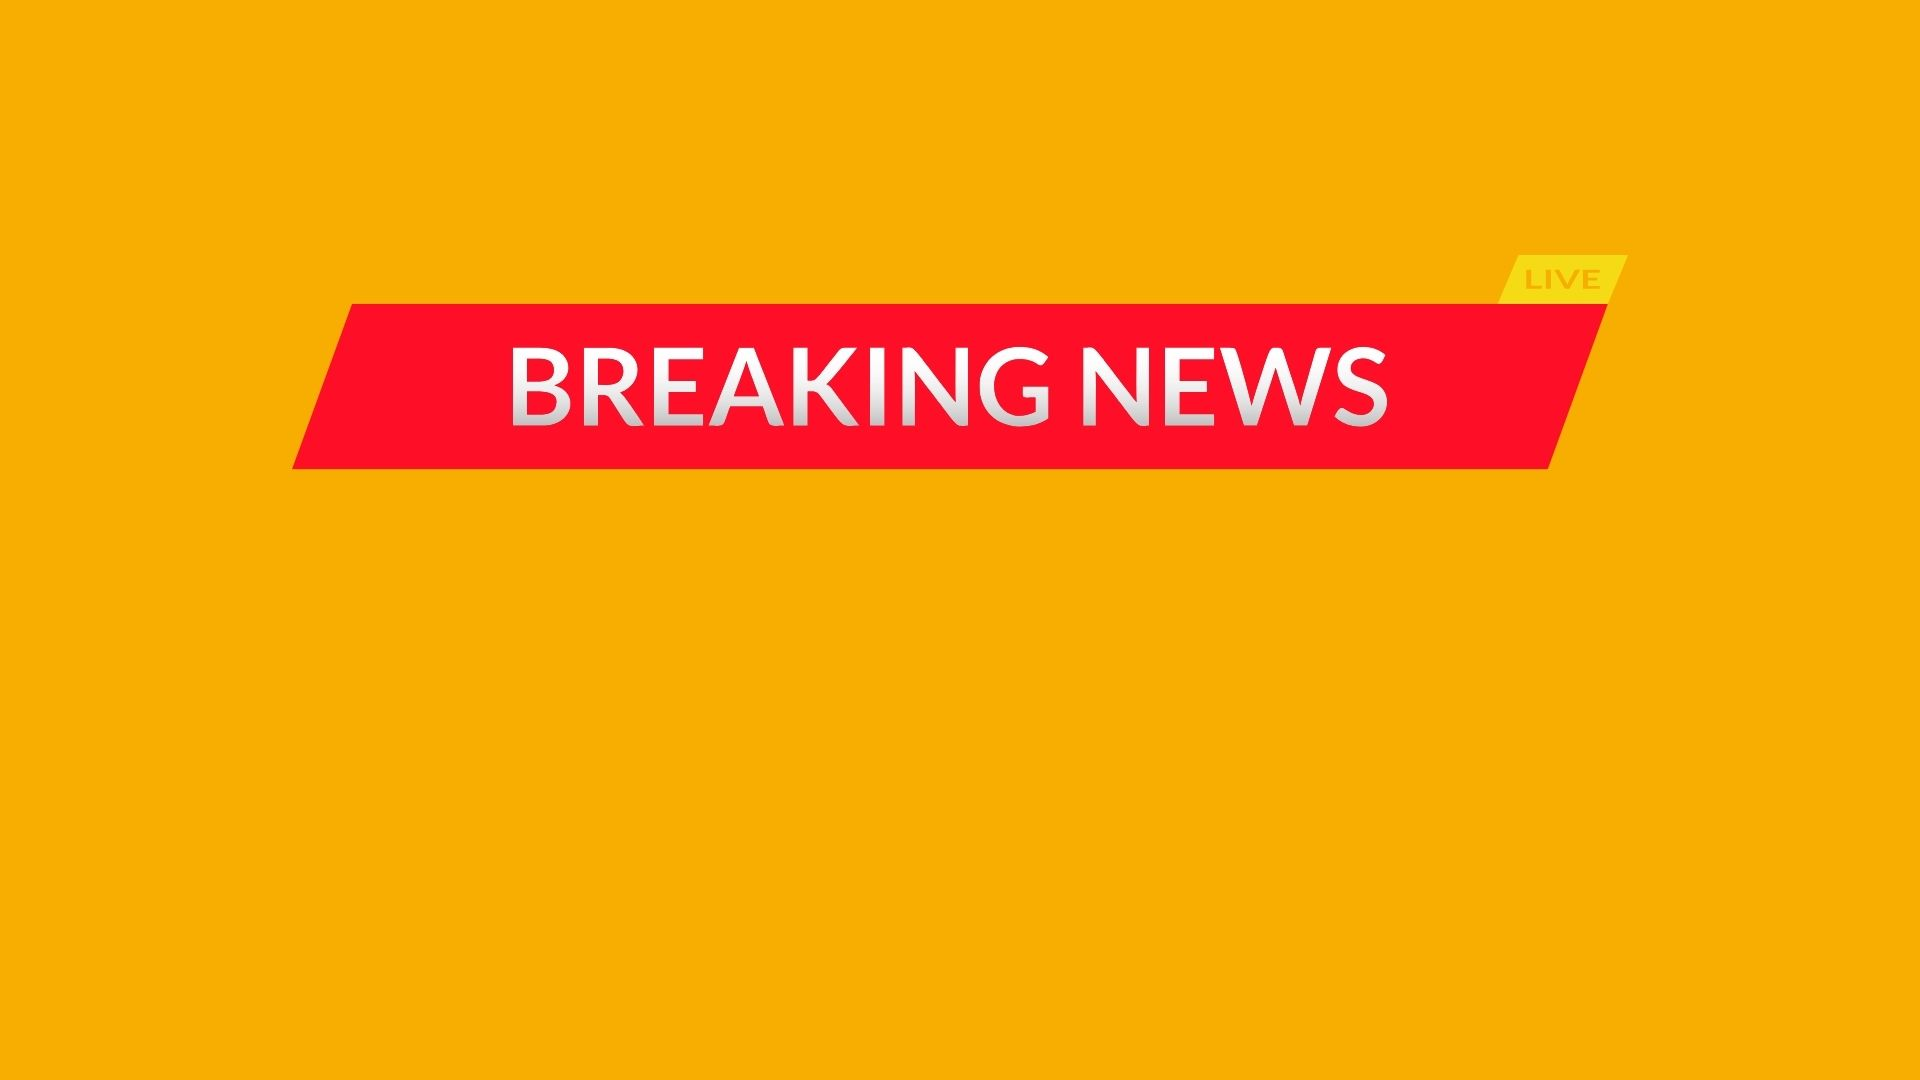 The words 'Breaking News' written in a tv news format against a yellow background